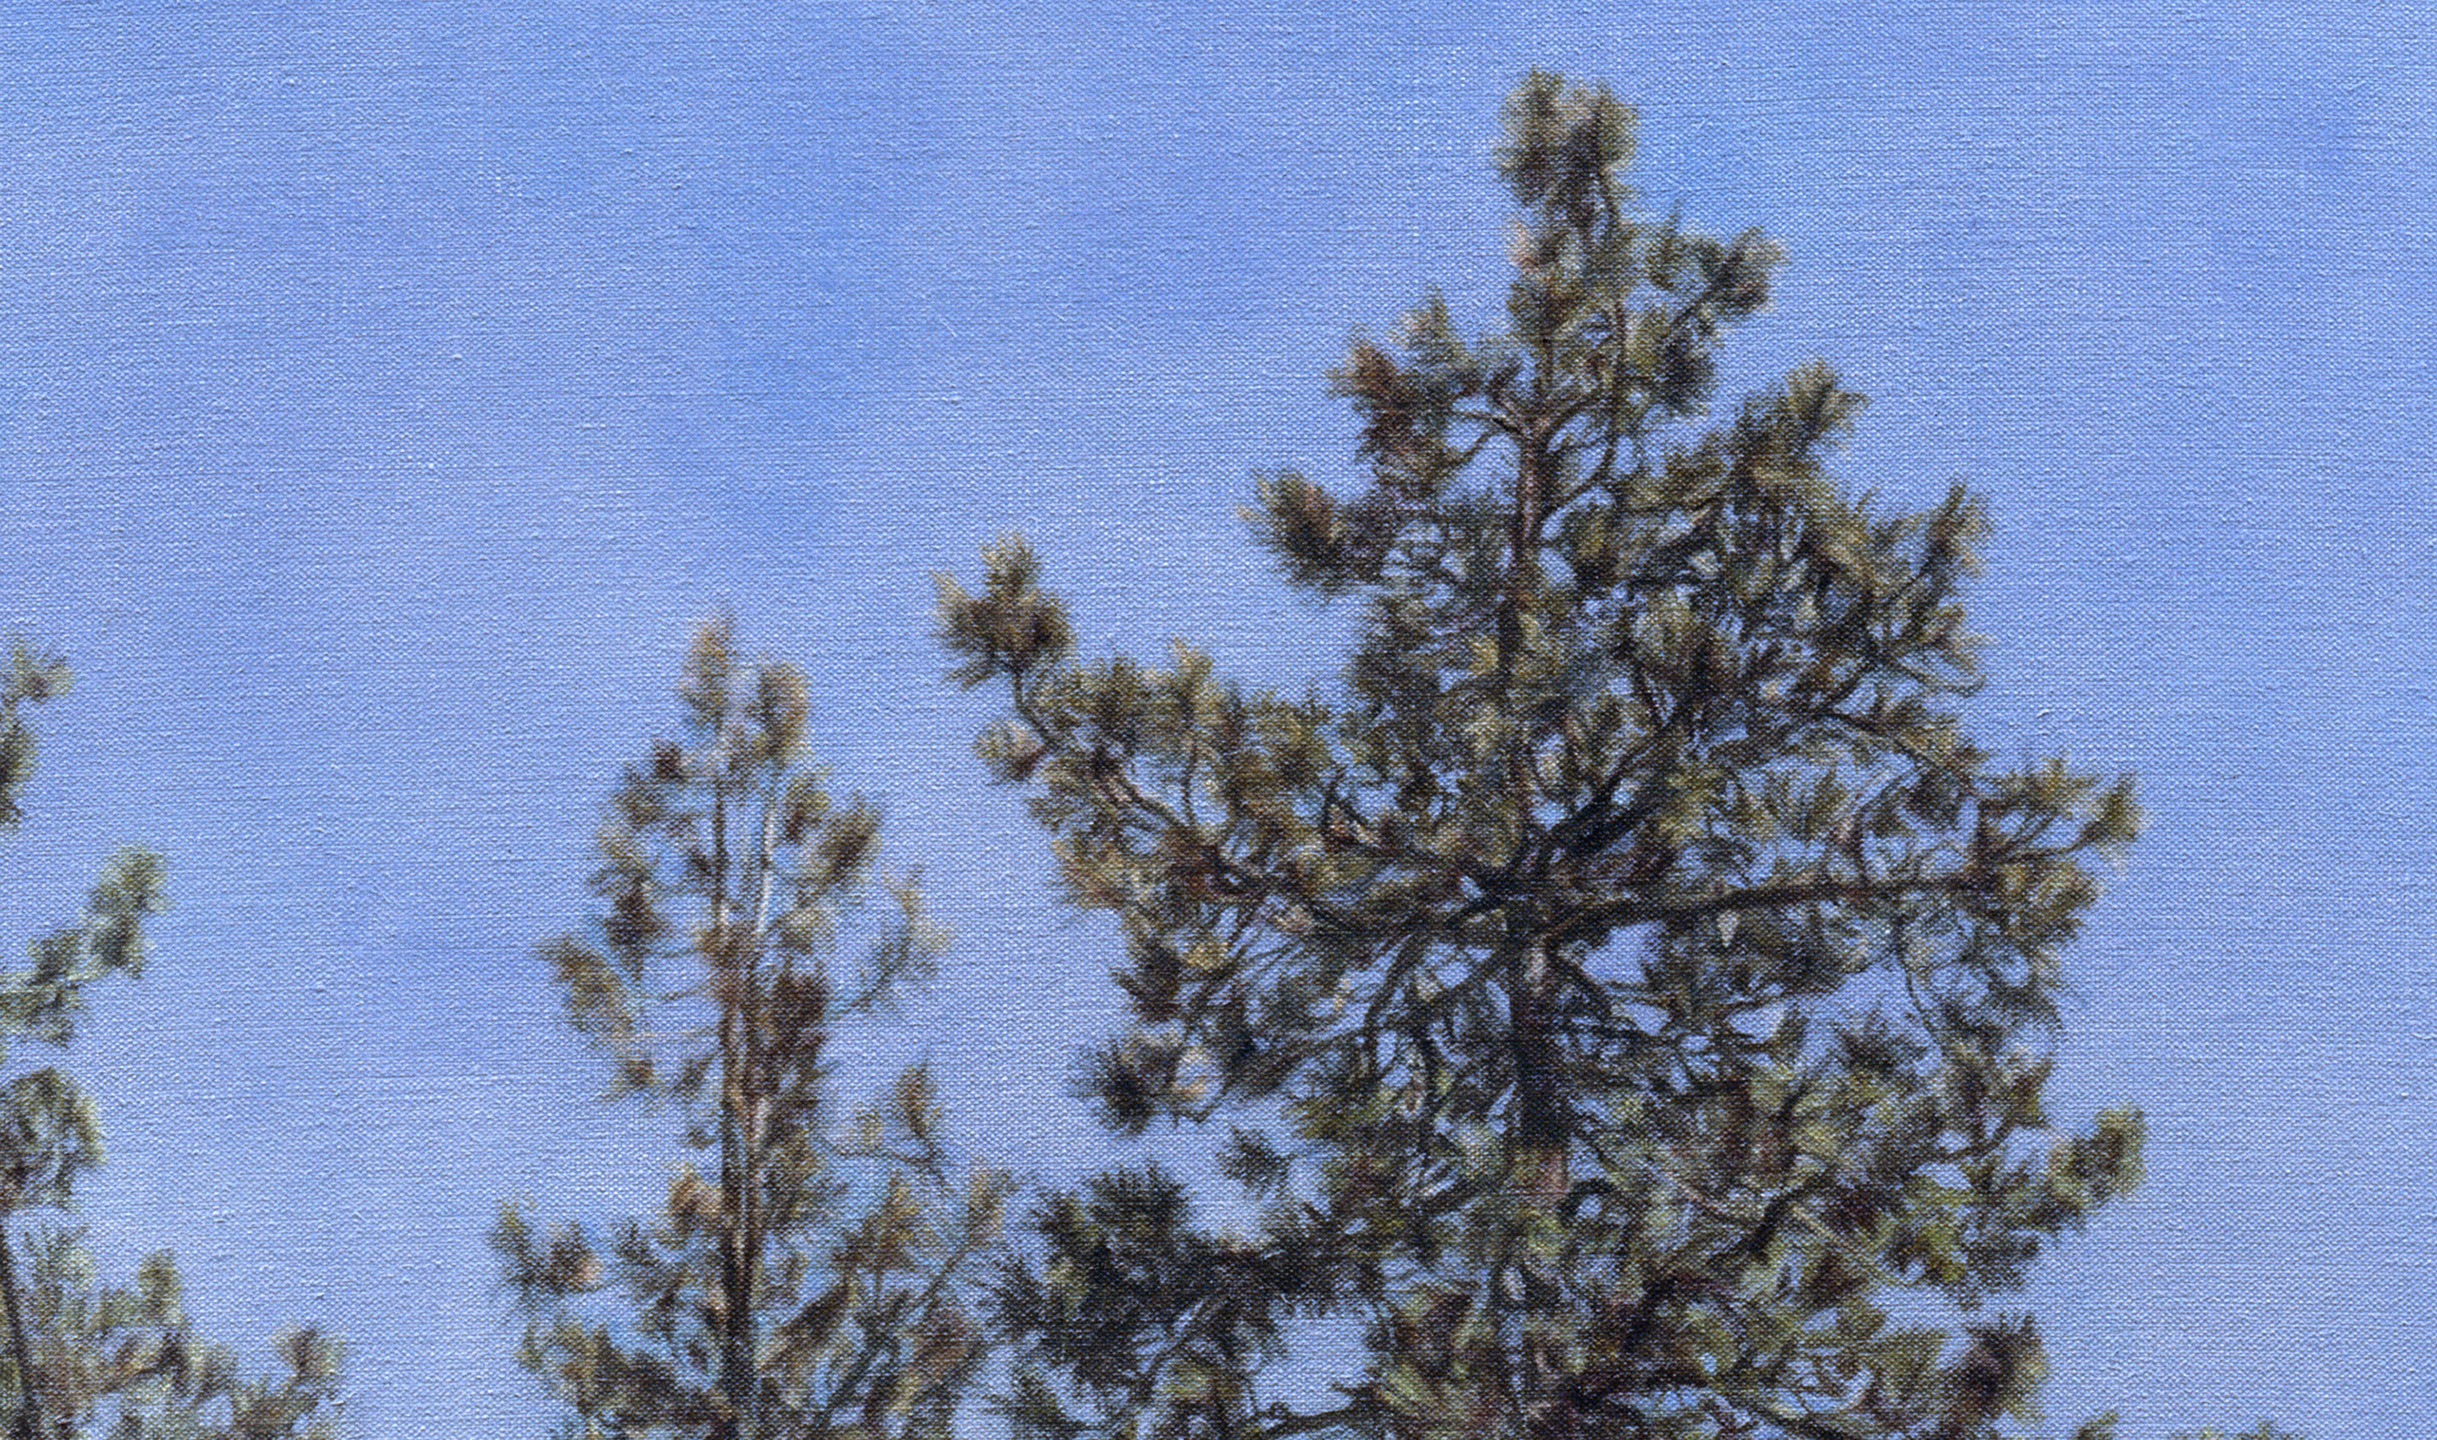 Big Bear Land Slab  (Detail), 2011 Oil on linen 48 x 47 inches